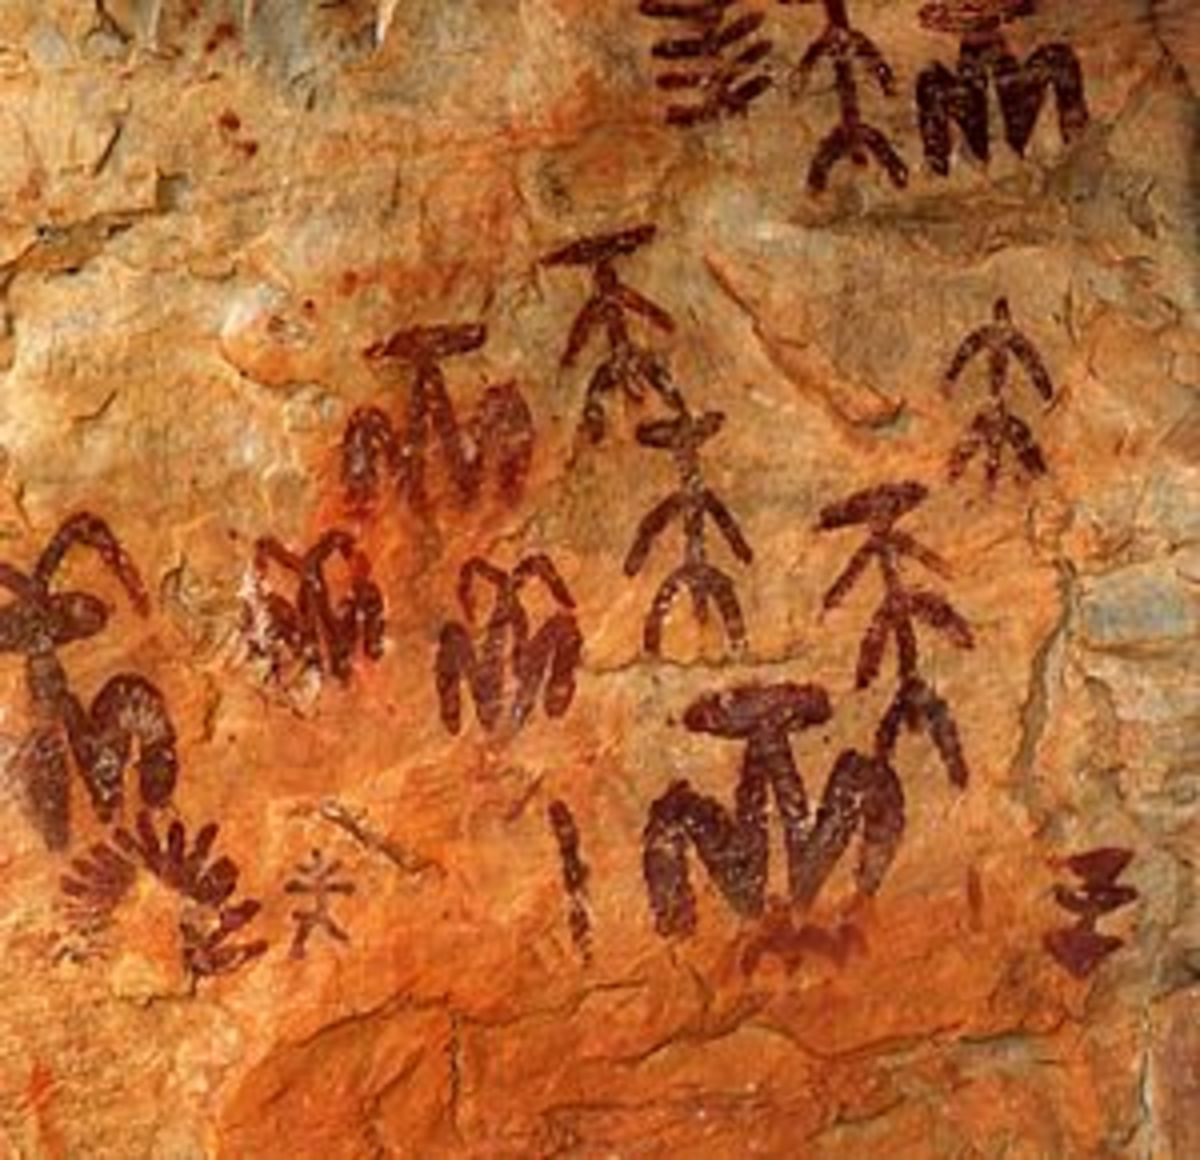 Cave paintings from the paleolithic period, Sierra Madrona